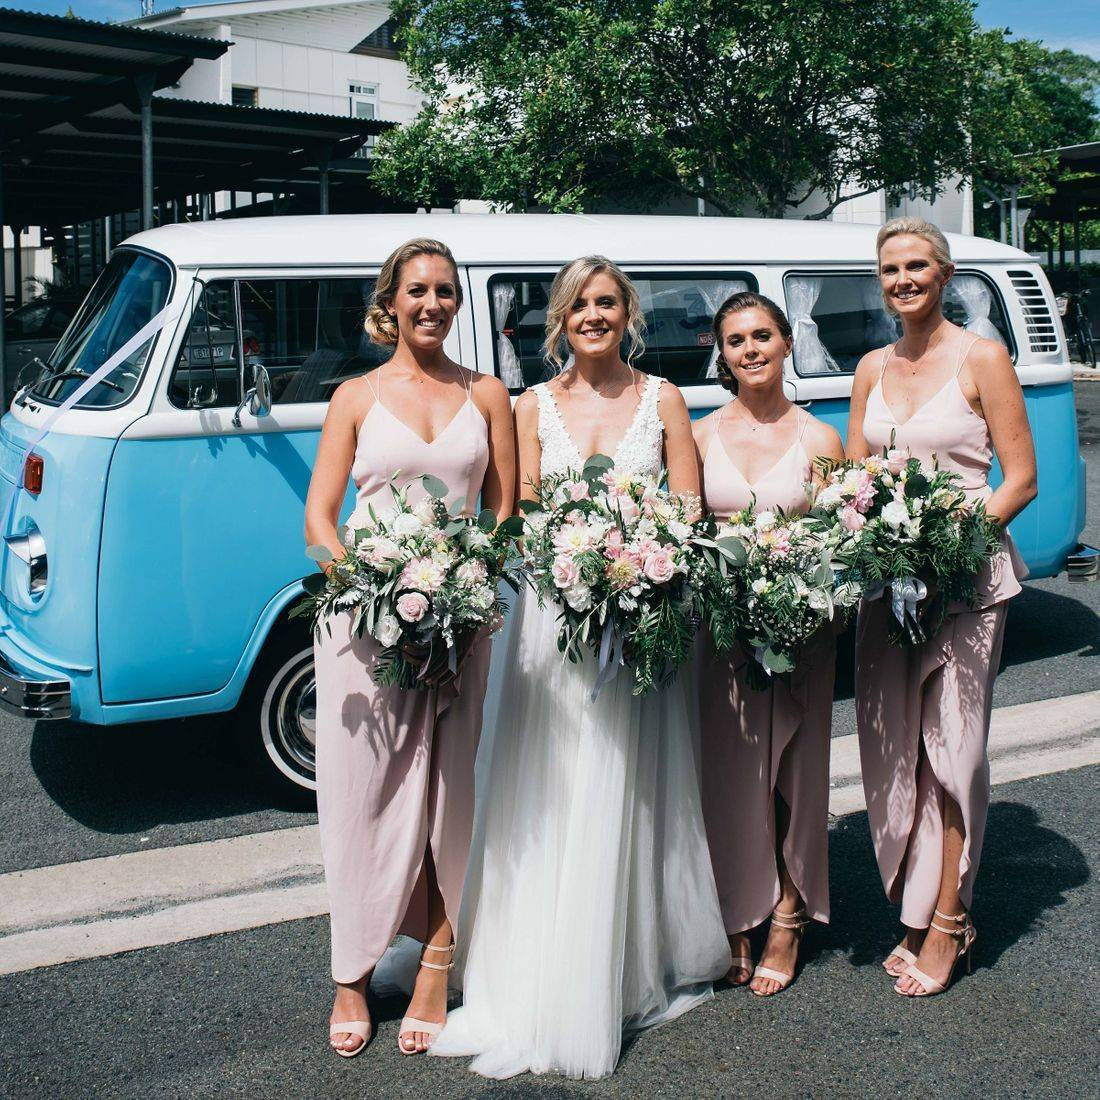 Alyssa and her bridesmaids